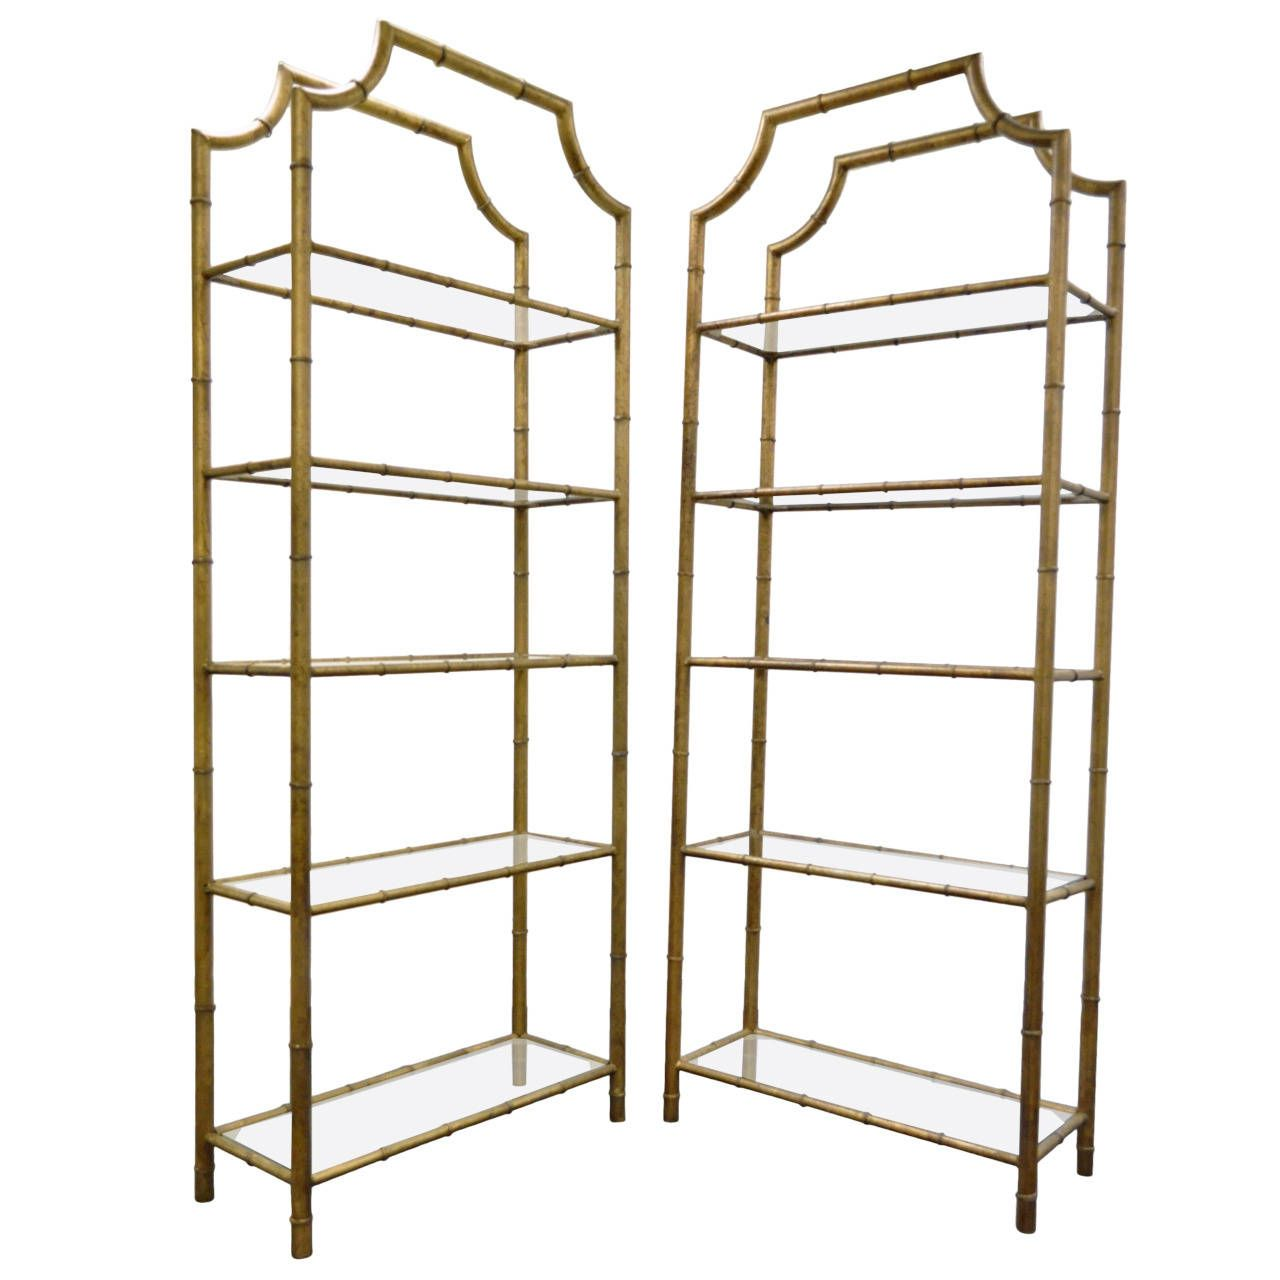 View This Item And Discover Similar Shelves For Sale At   Stunning Pair Of  Vintage Hollywood Regency Faux Bamboo Etageres. This Wonderful Pair Of Gilt  Metal ... Amazing Pictures